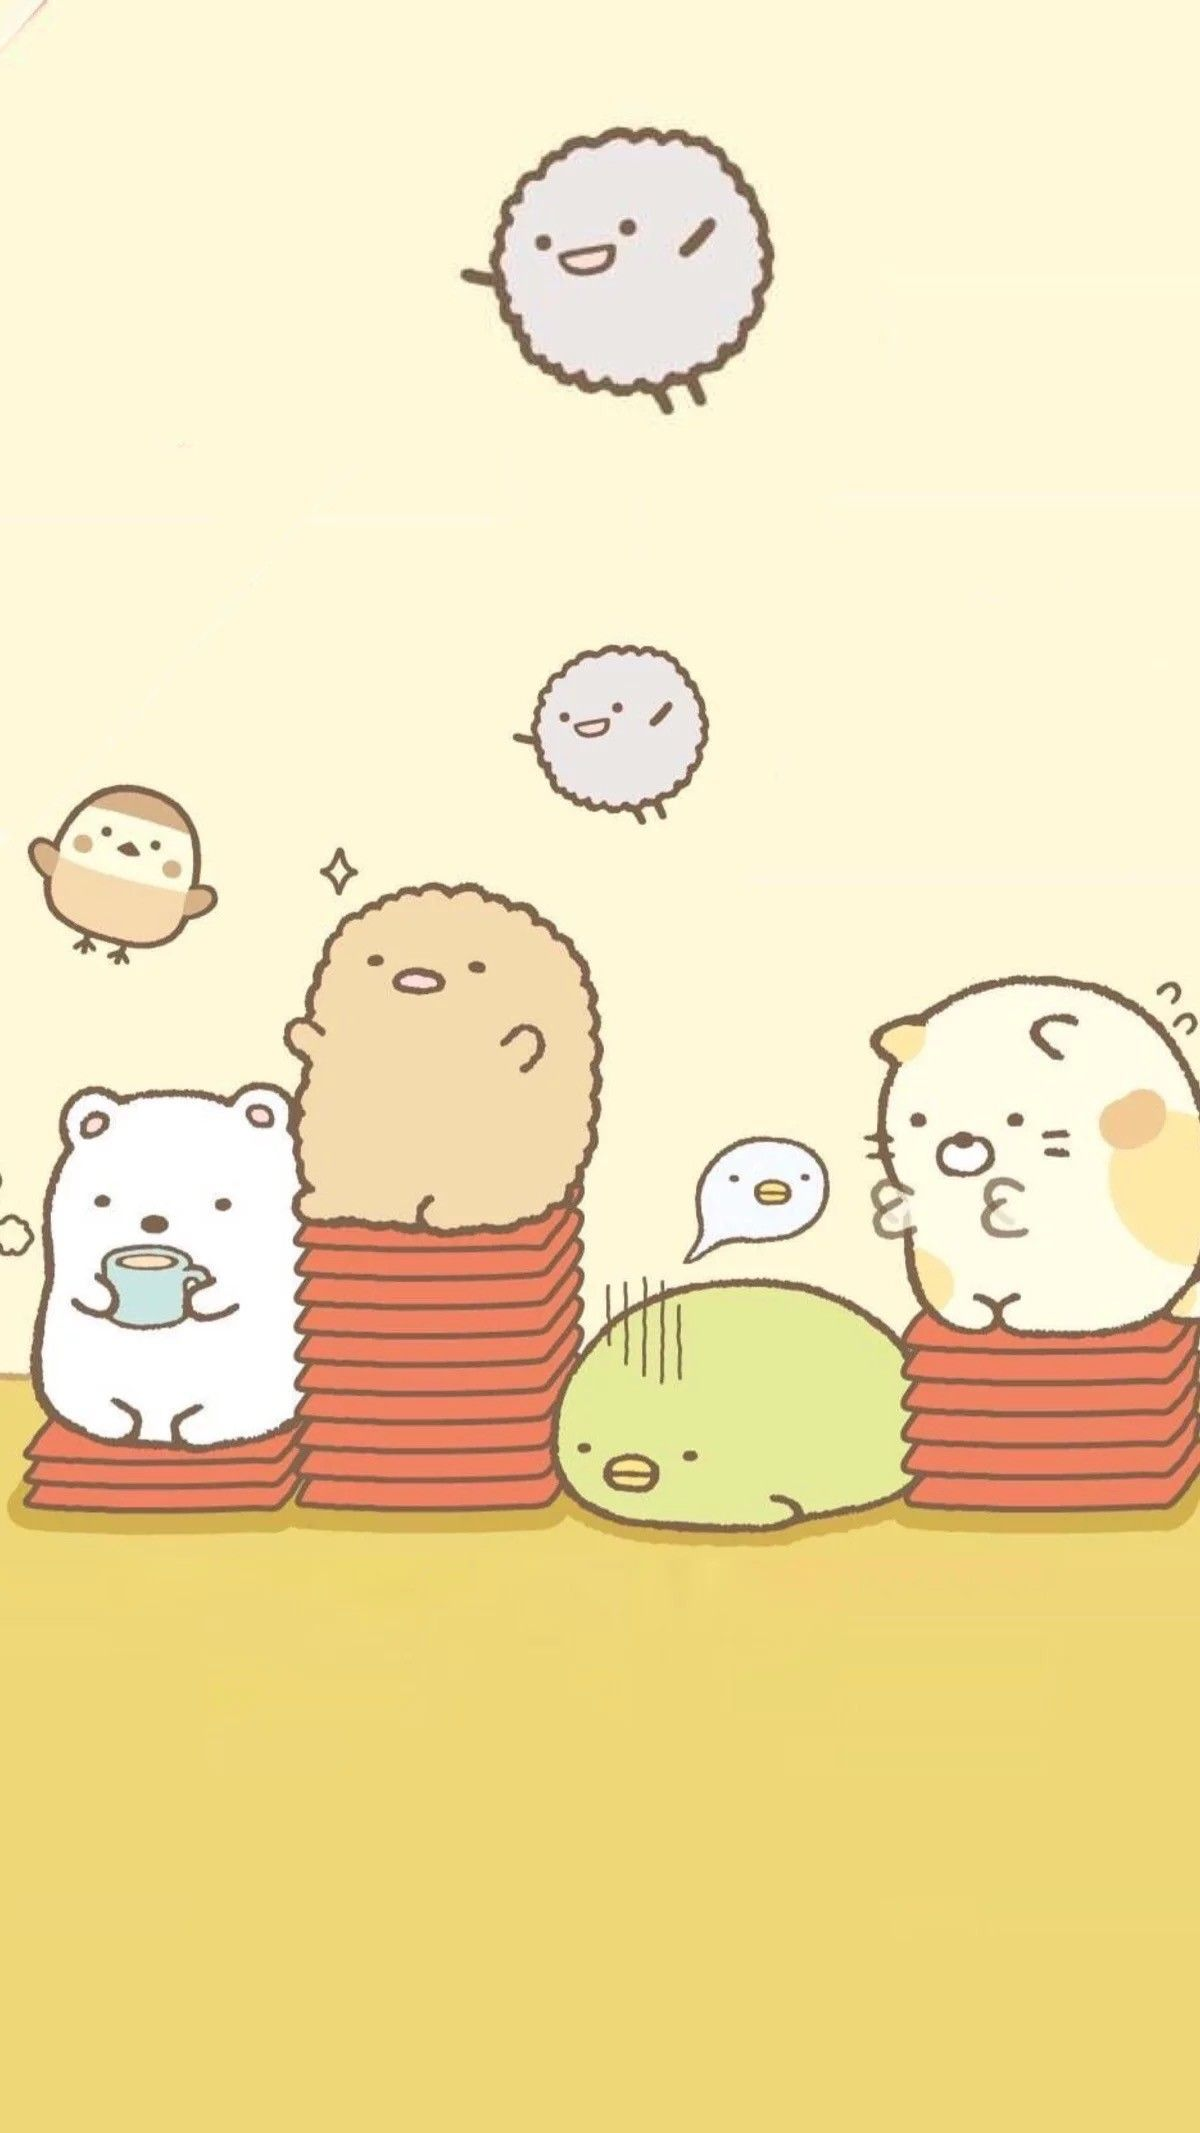 Awesome Cute Japanese iPhone Wallpapers - WallpaperAccess